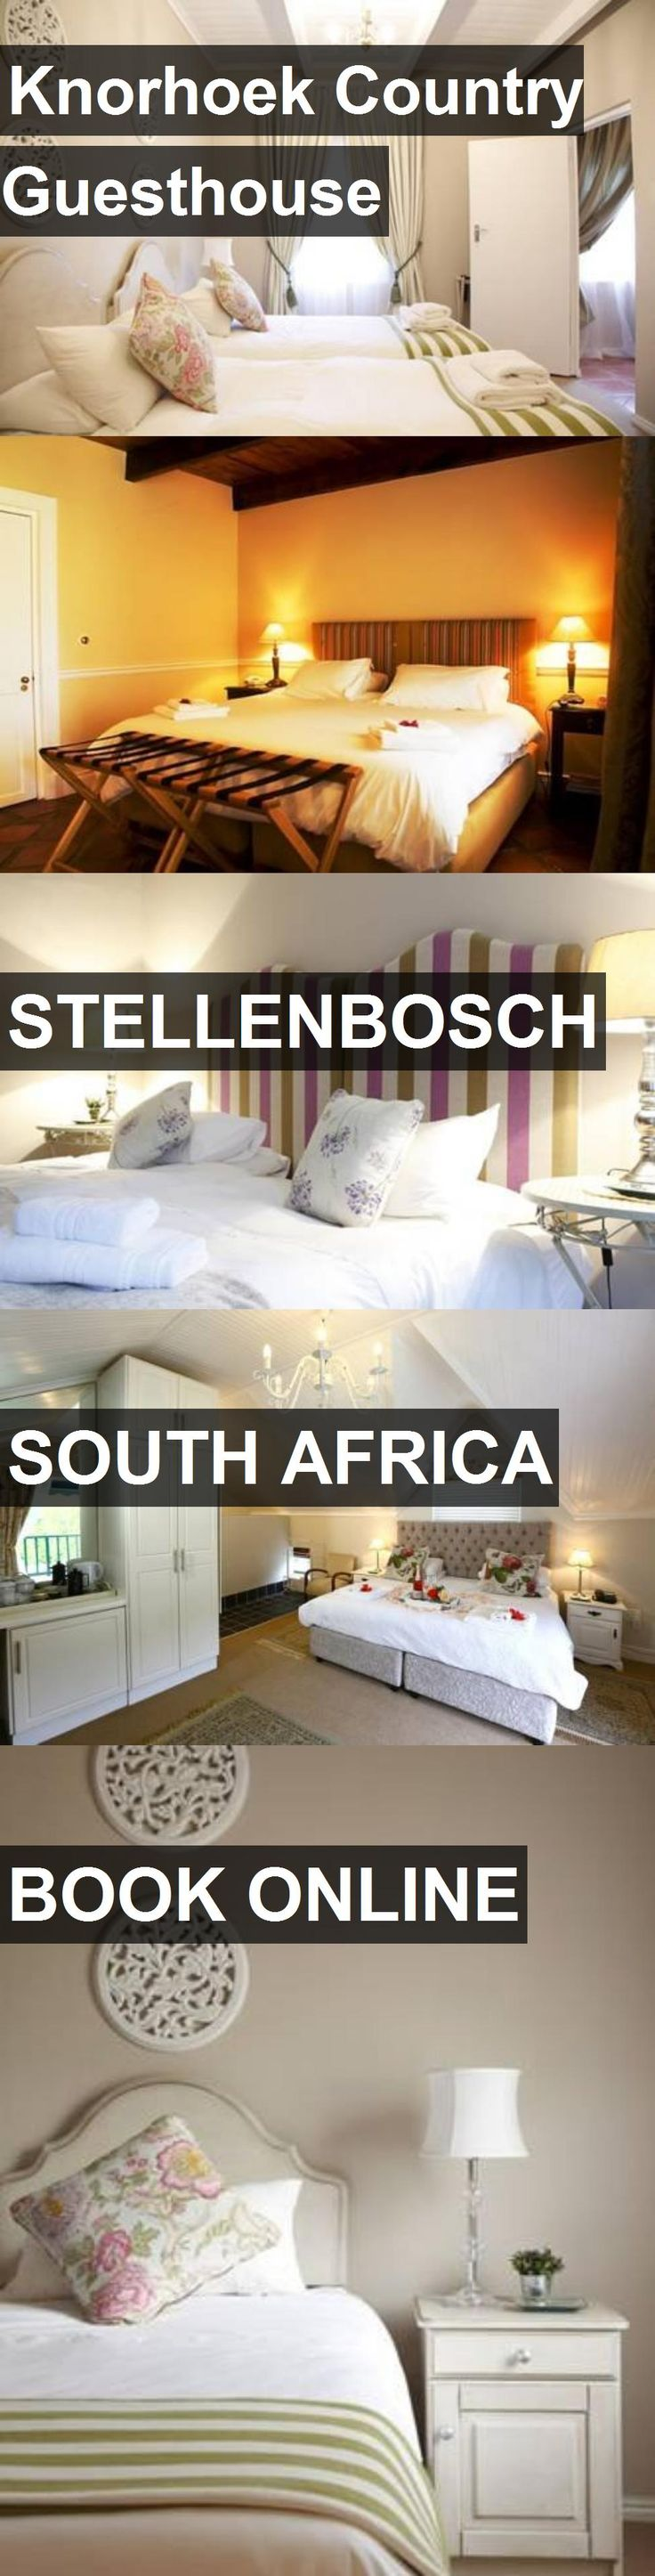 Hotel Knorhoek Country Guesthouse in STELLENBOSCH, South Africa. For more information, photos, reviews and best prices please follow the link. #SouthAfrica #STELLENBOSCH #travel #vacation #hotel